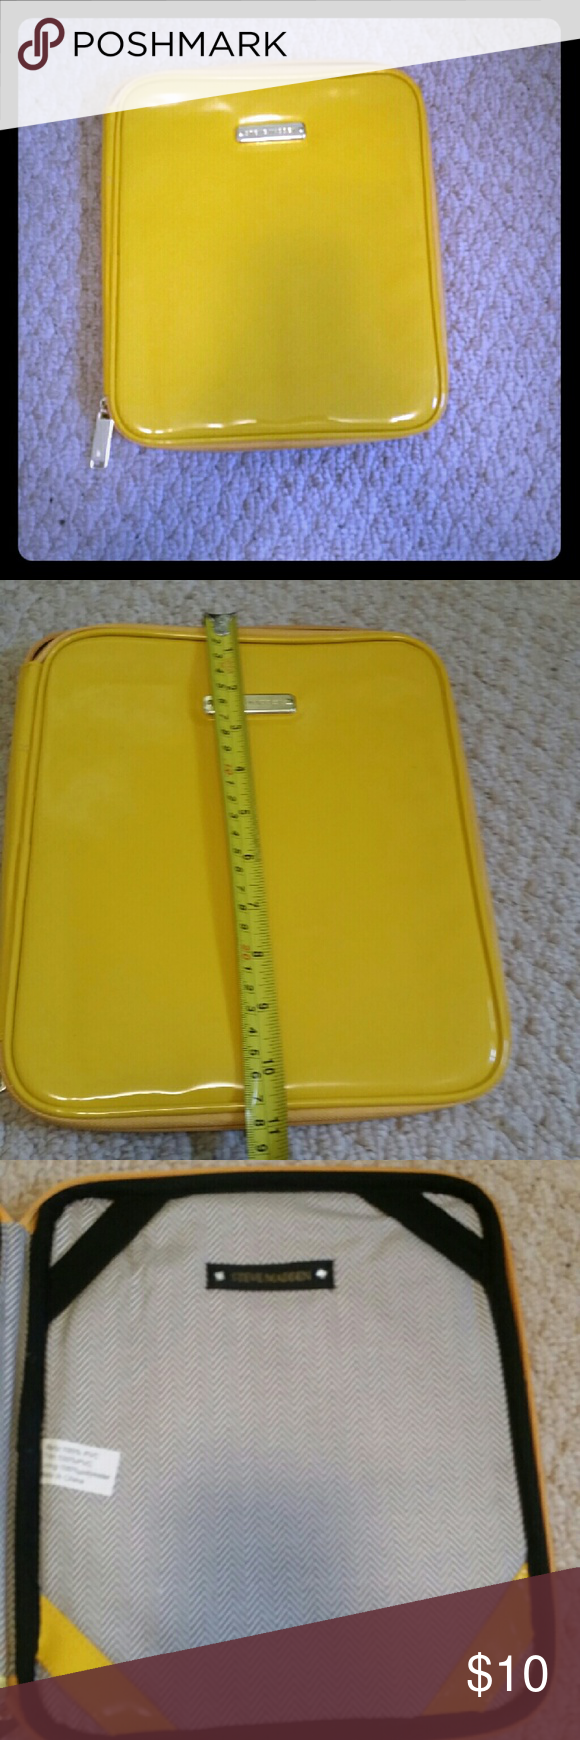 Steve Madden tablet case Bright yellow Steve Madden tablet/iPad case. Has small spot on back as shown in 4th photo. Measurements shown in 2nd photo. Gold hardware. Steve Madden Accessories Laptop Cases